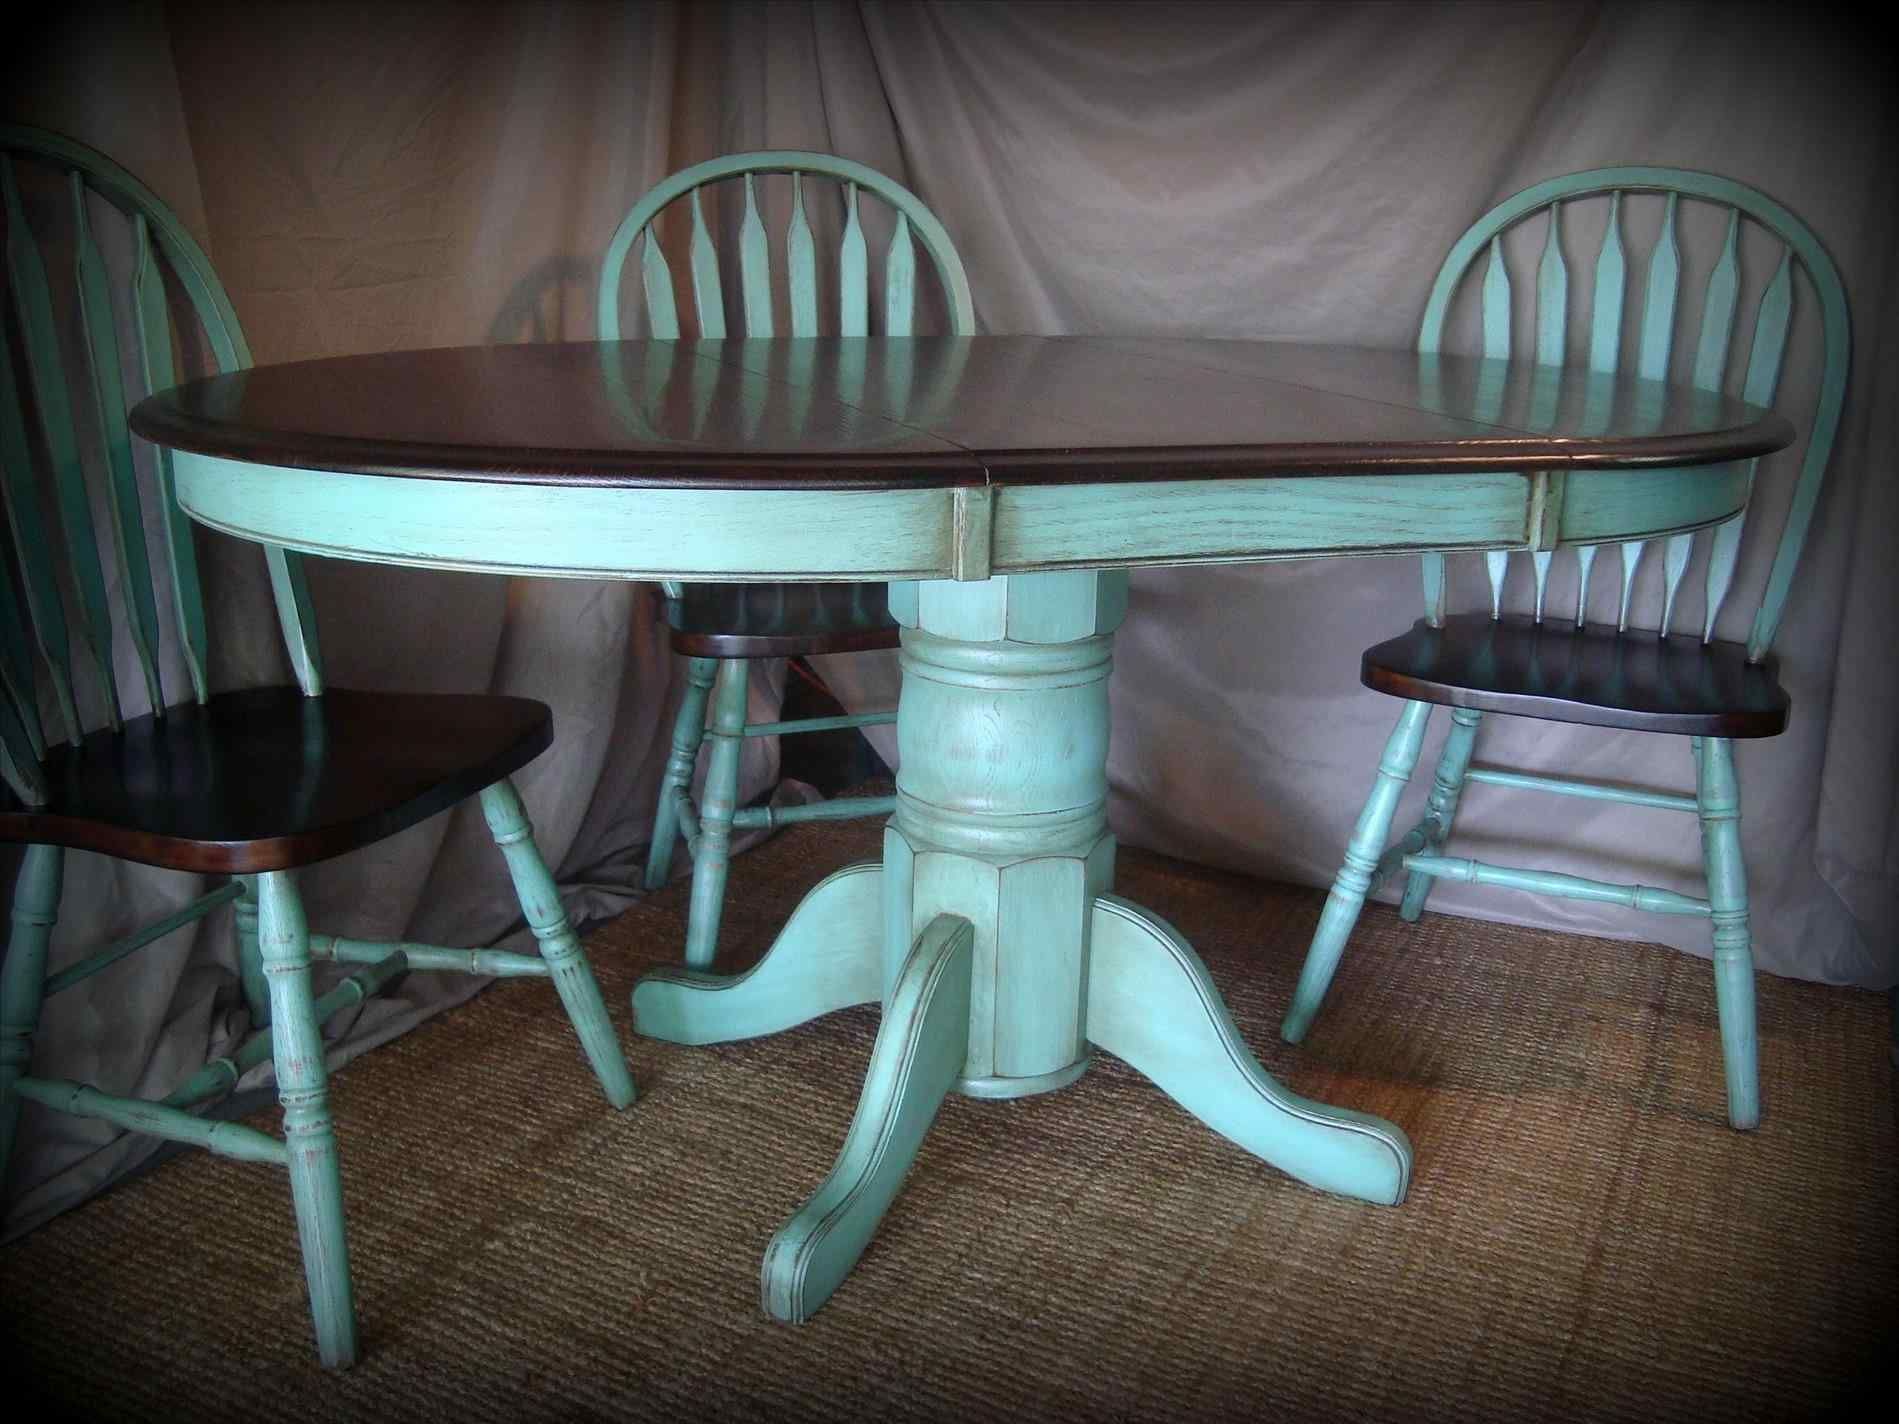 Easy Refinishing Wood Chairs Ideas You Need To Copy Kitchen Table Makeover Kitchen Table Redo Furniture Rehab